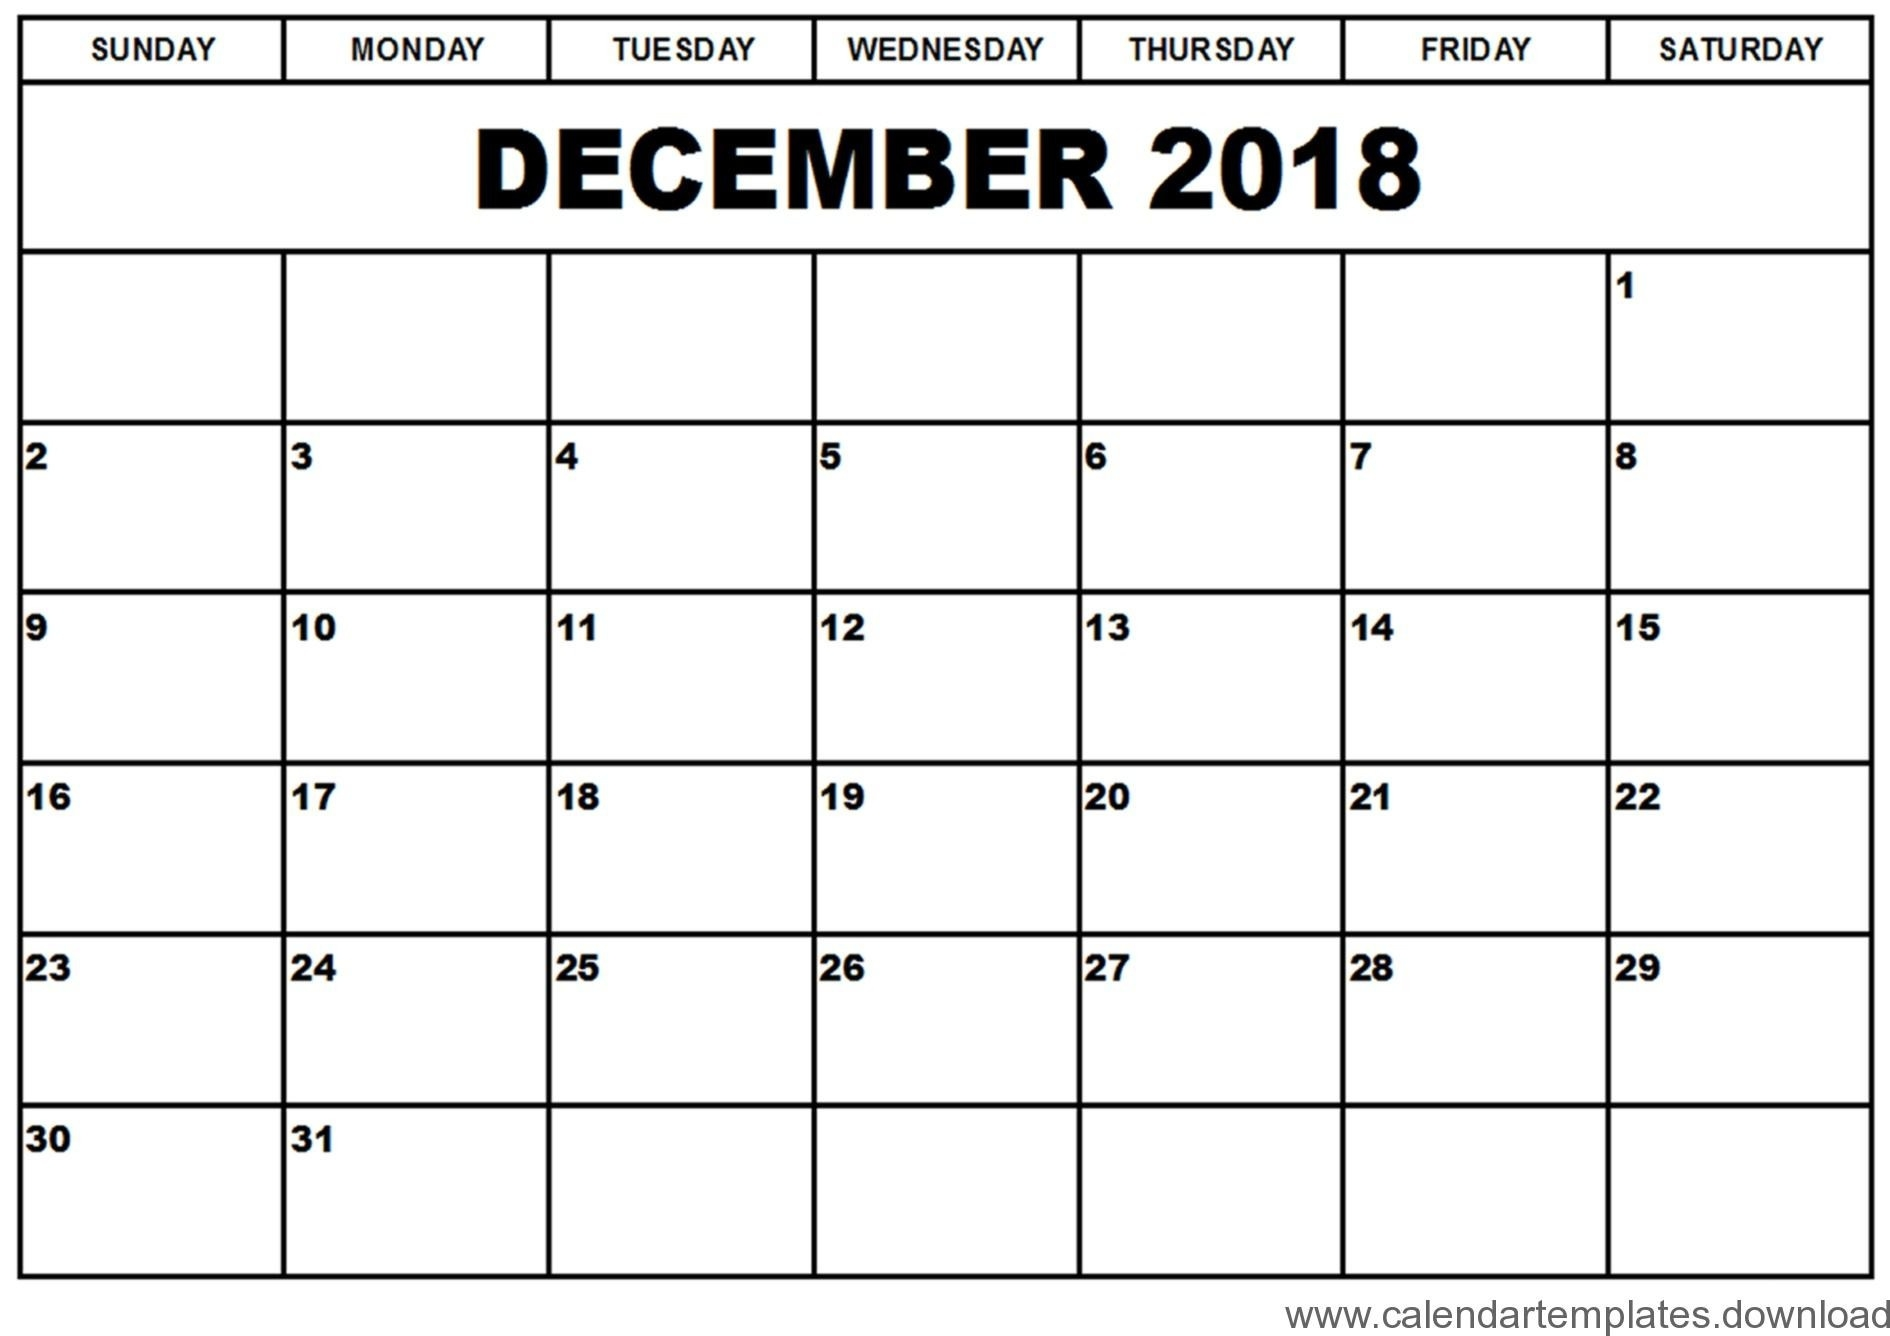 Printable Calendar December 2018 Template Download Free Exceptional  Calander From August - December